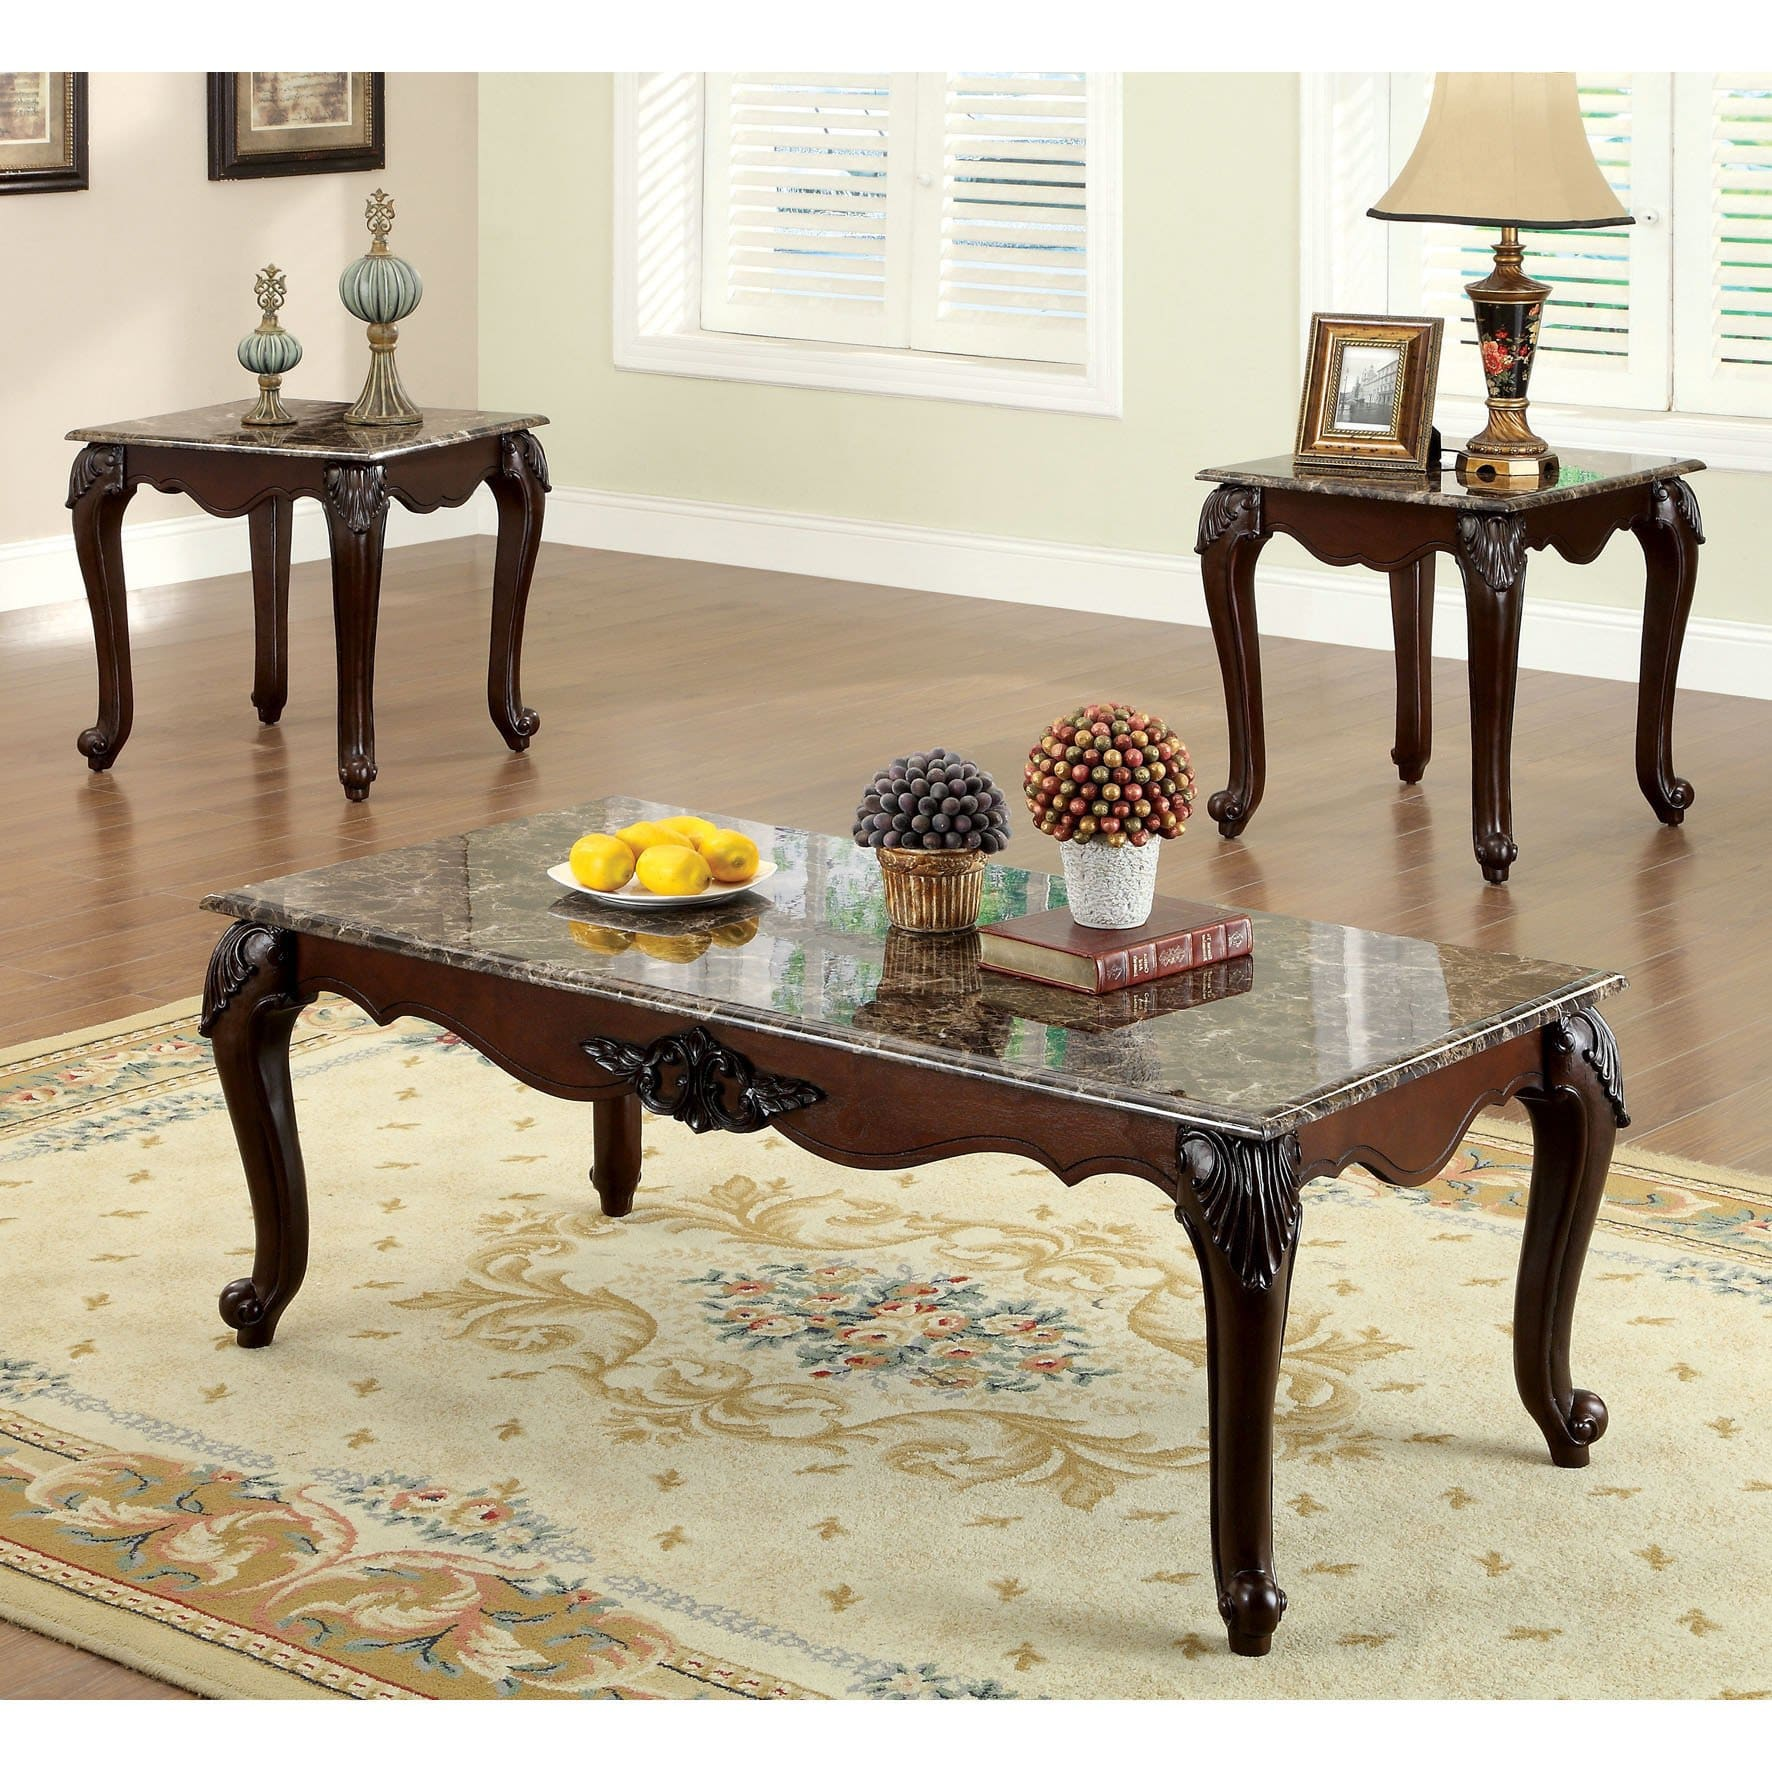 furniture america callington traditional piece faux marble top accent table set free shipping today teak patio large end bbq grill thin living room inexpensive sets wood coffee